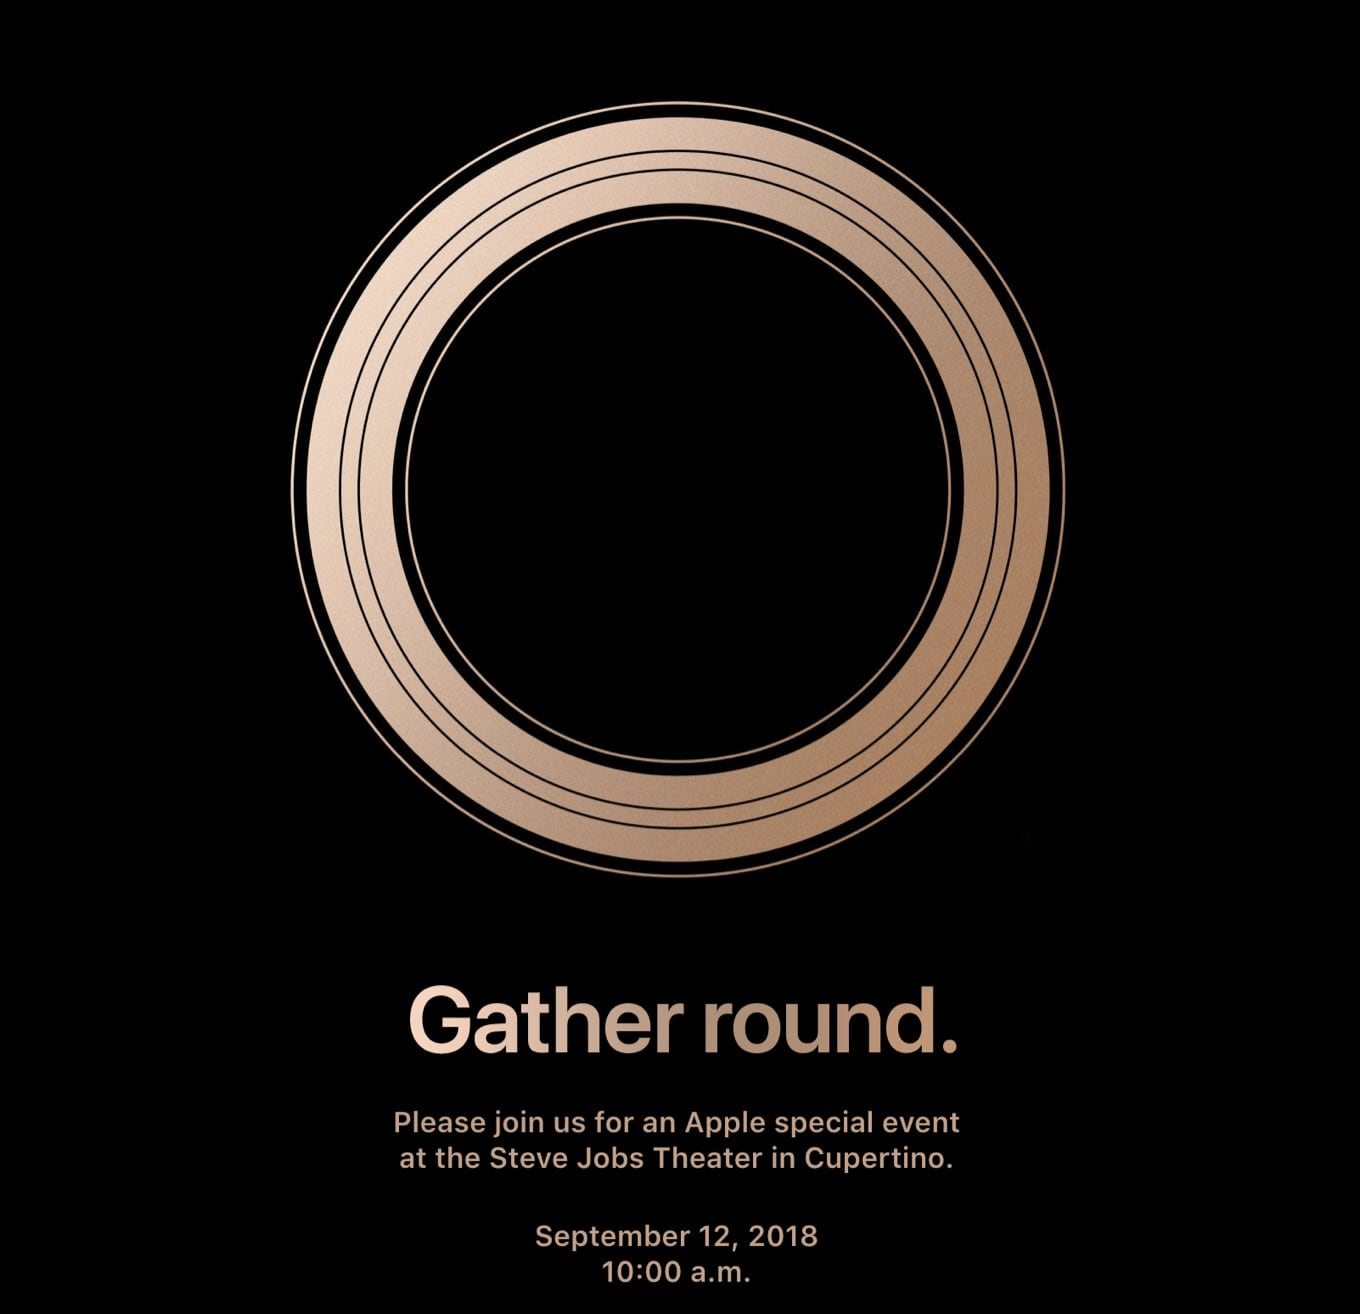 iPhone event invite 2018